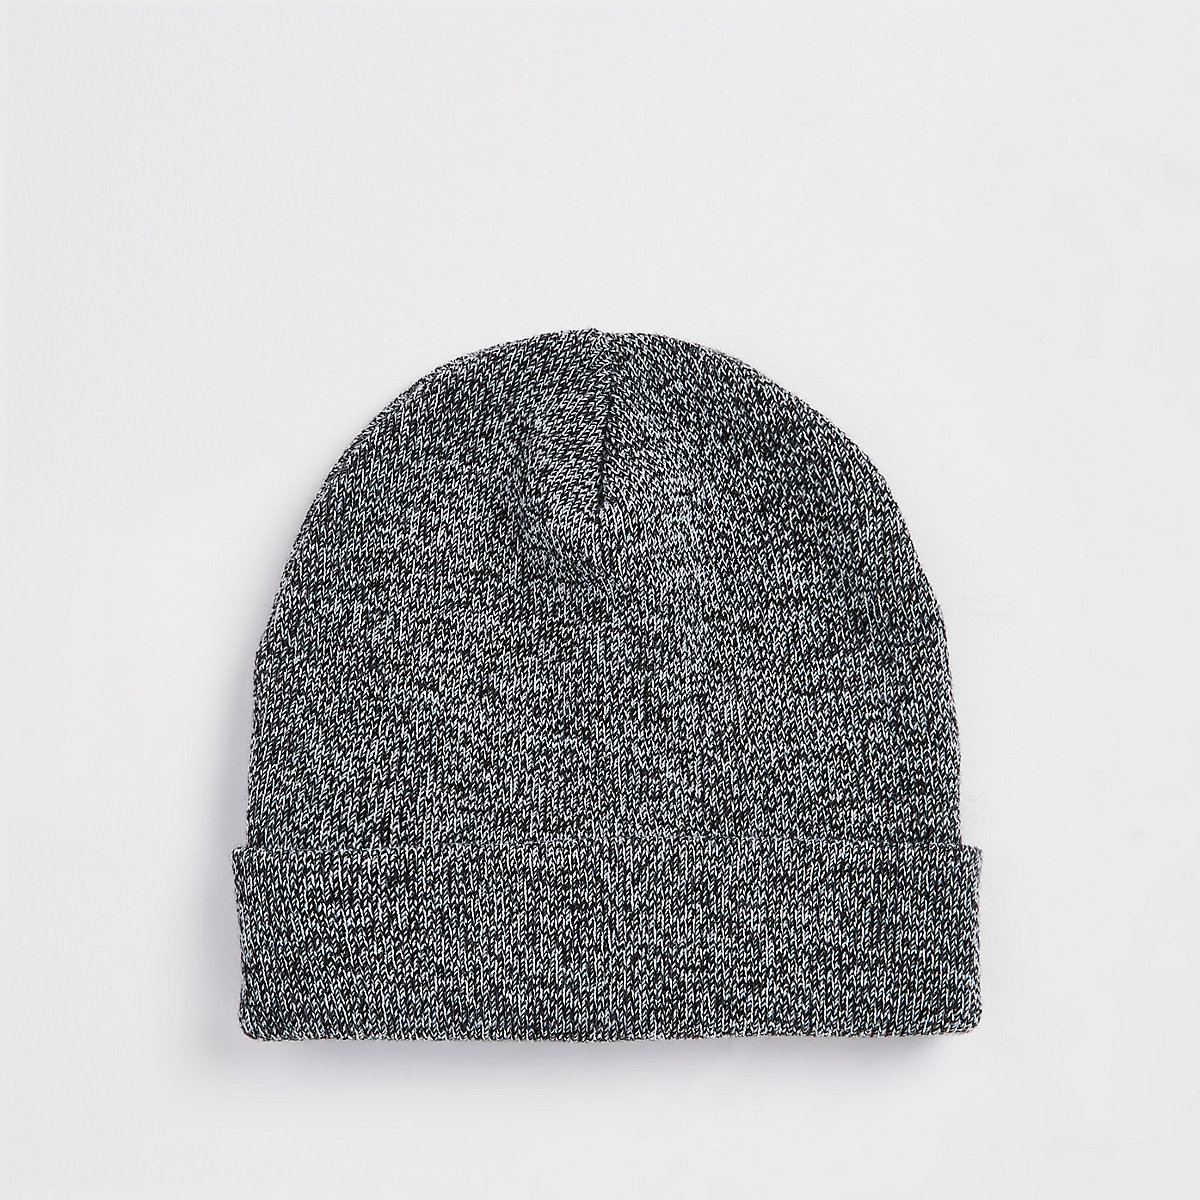 Grey slouch beanie hat - Hats   Caps - Accessories - men 5a7315f24ca